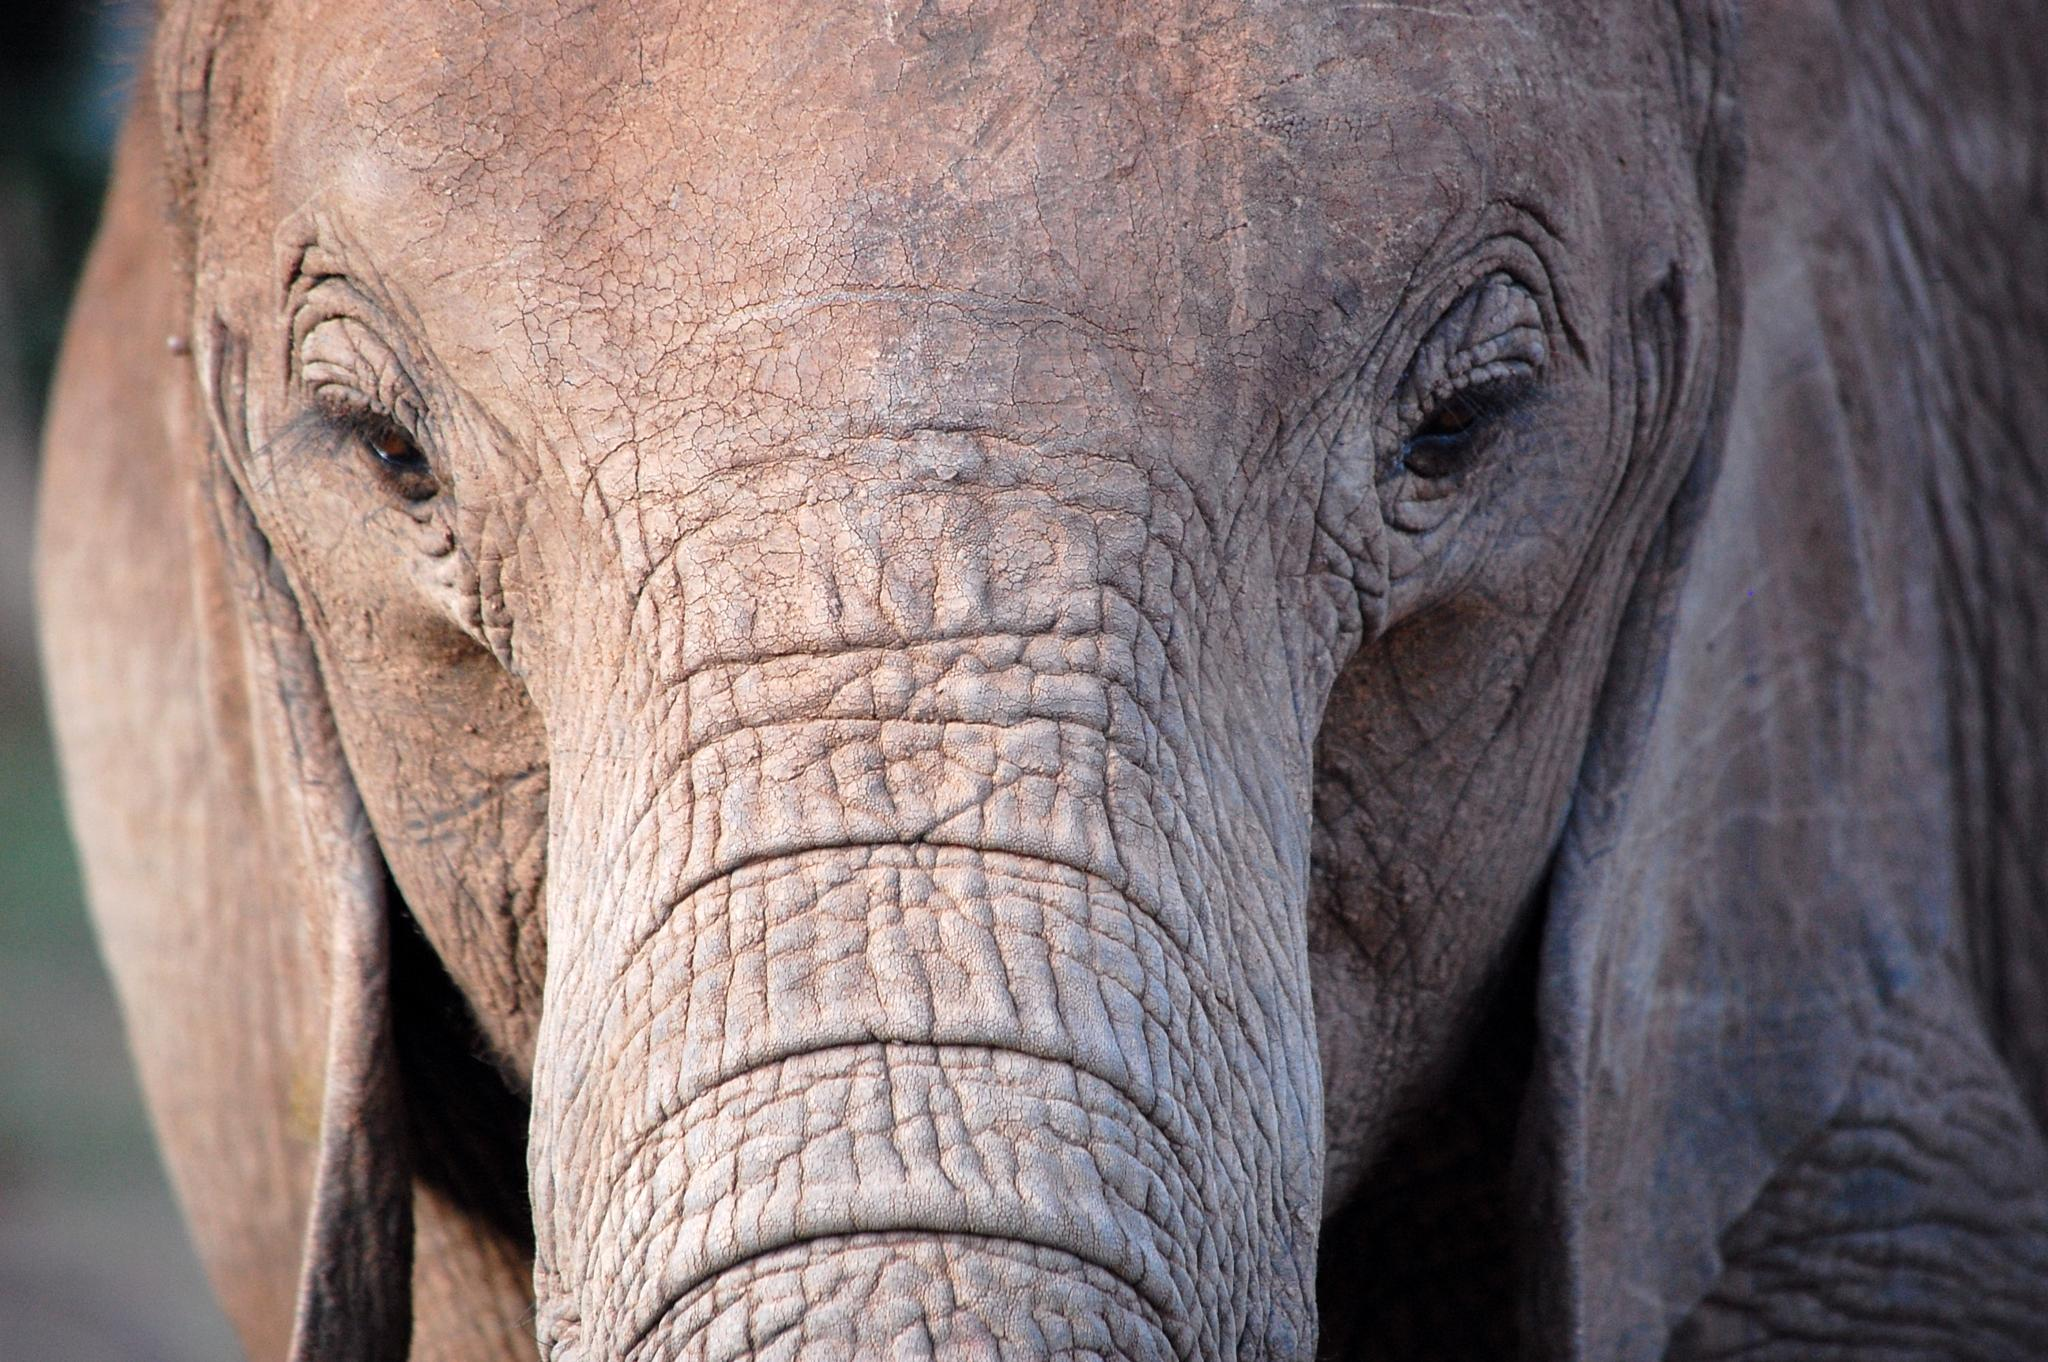 Elefant closeup by Rainer Buerkle